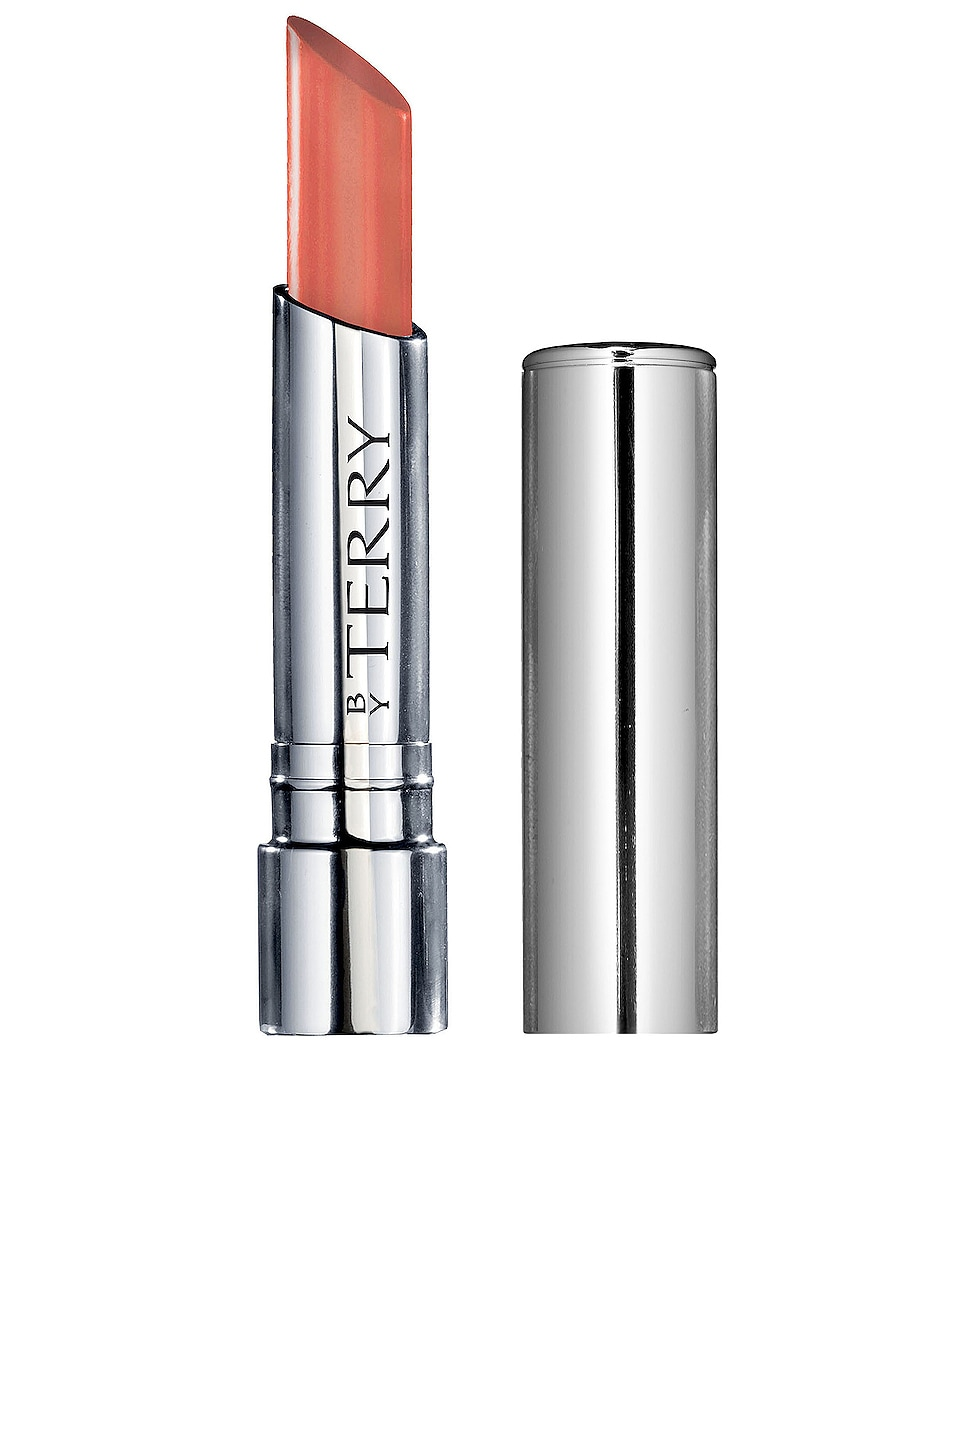 By Terry Hyaluronic Sheer Rouge Hydra-Balm Lipstick in Nudissimo